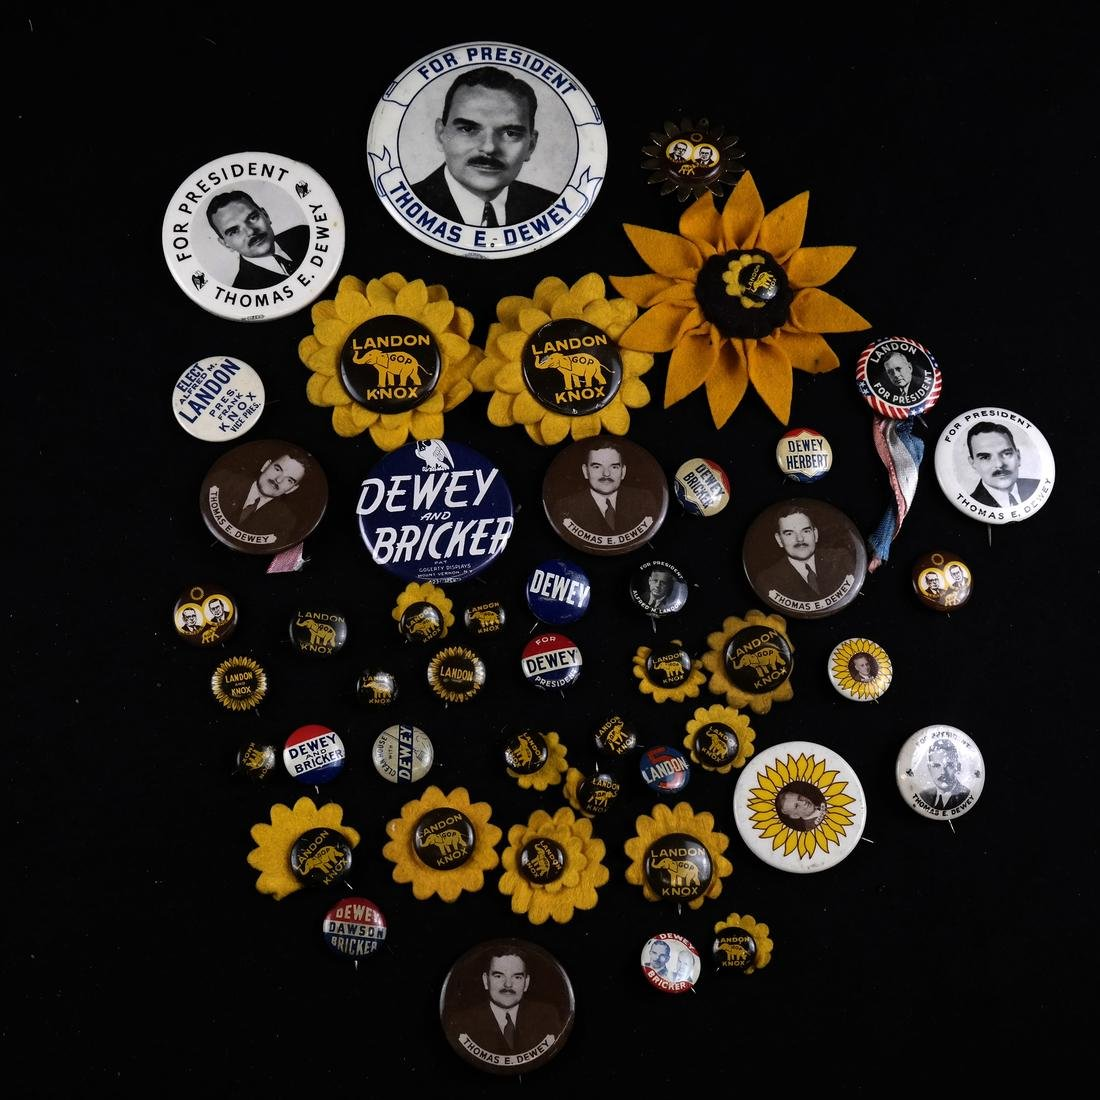 LARGE GROUP OF LANDON & DEWEY BUTTONS